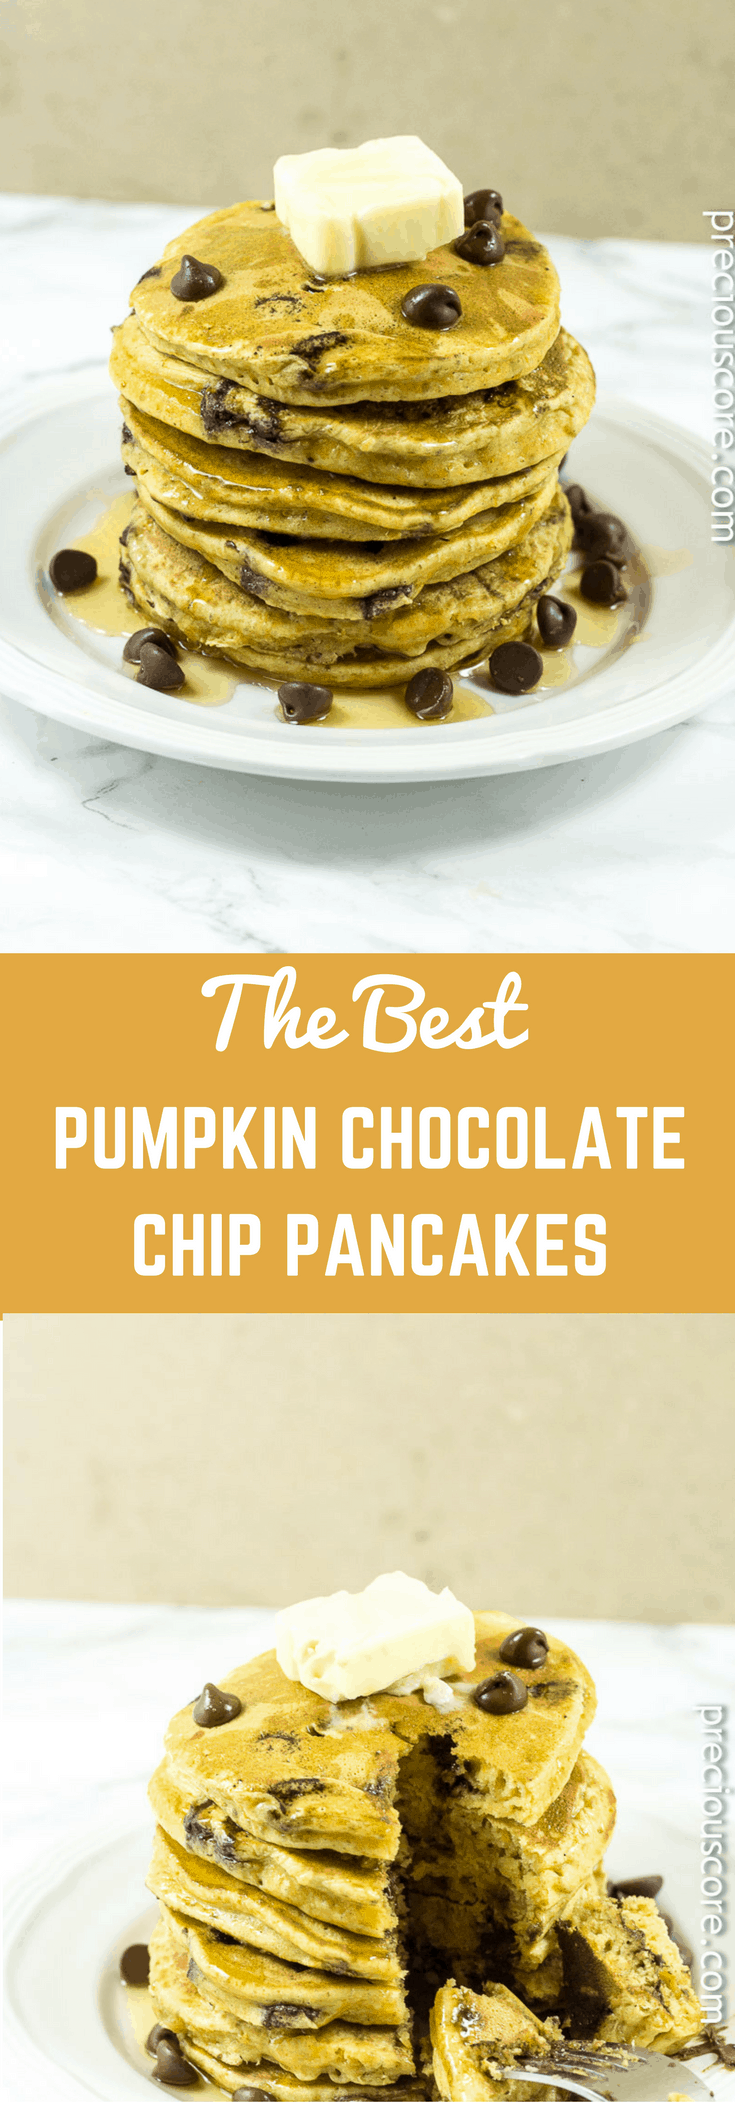 These pumpkin chocolate chip pancakes are the perfect fall breakfast though you can totally enjoy them at anytime of the year. Get the full recipe at Precious Core.